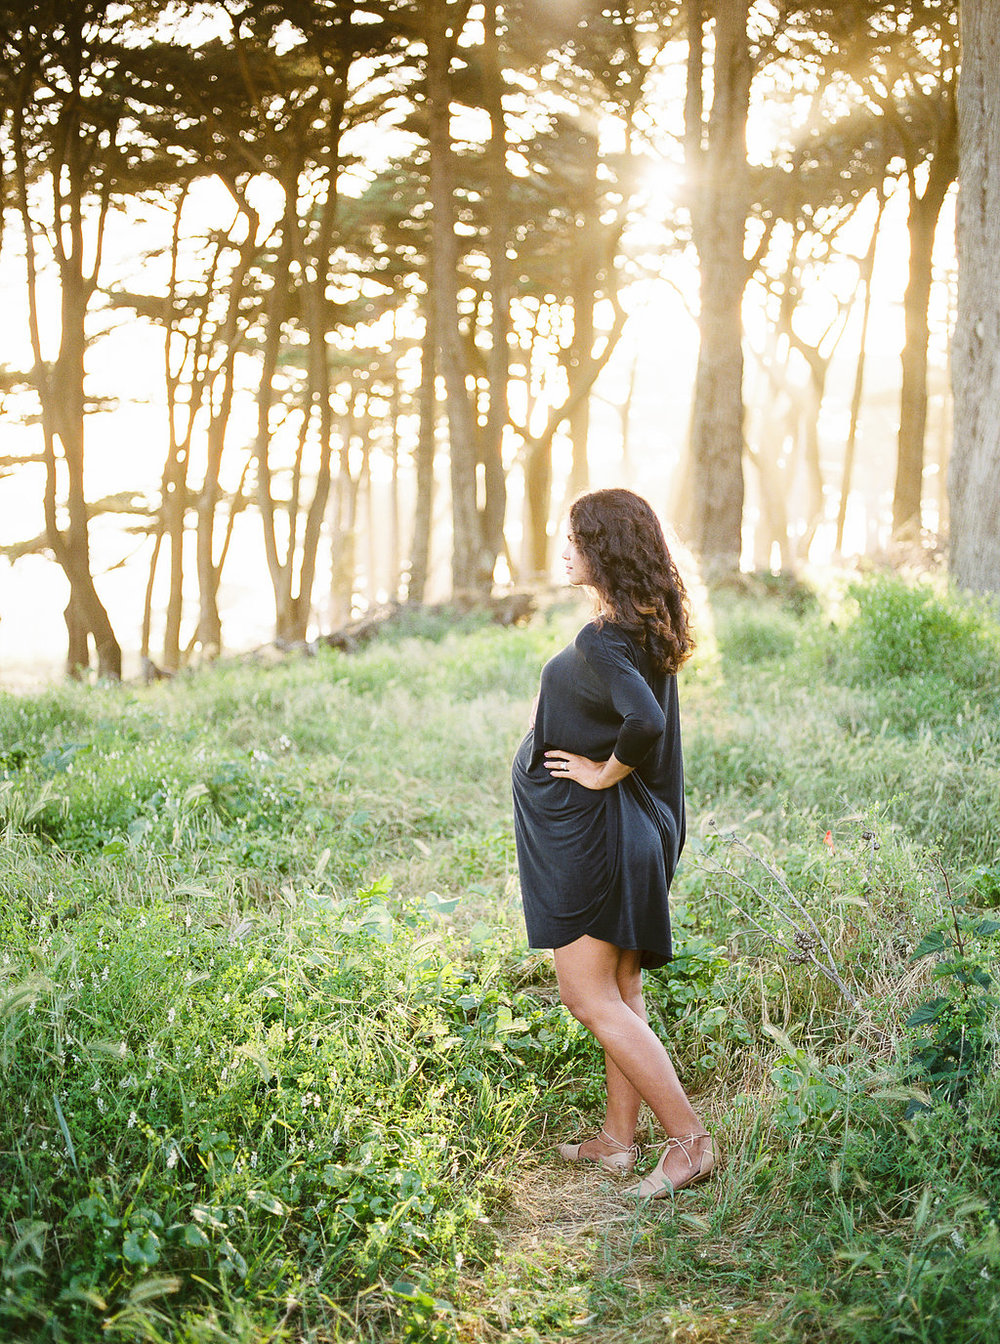 San Fransisco wedding photographer Kibogo Photographer | maternity photos in SF 25.JPG